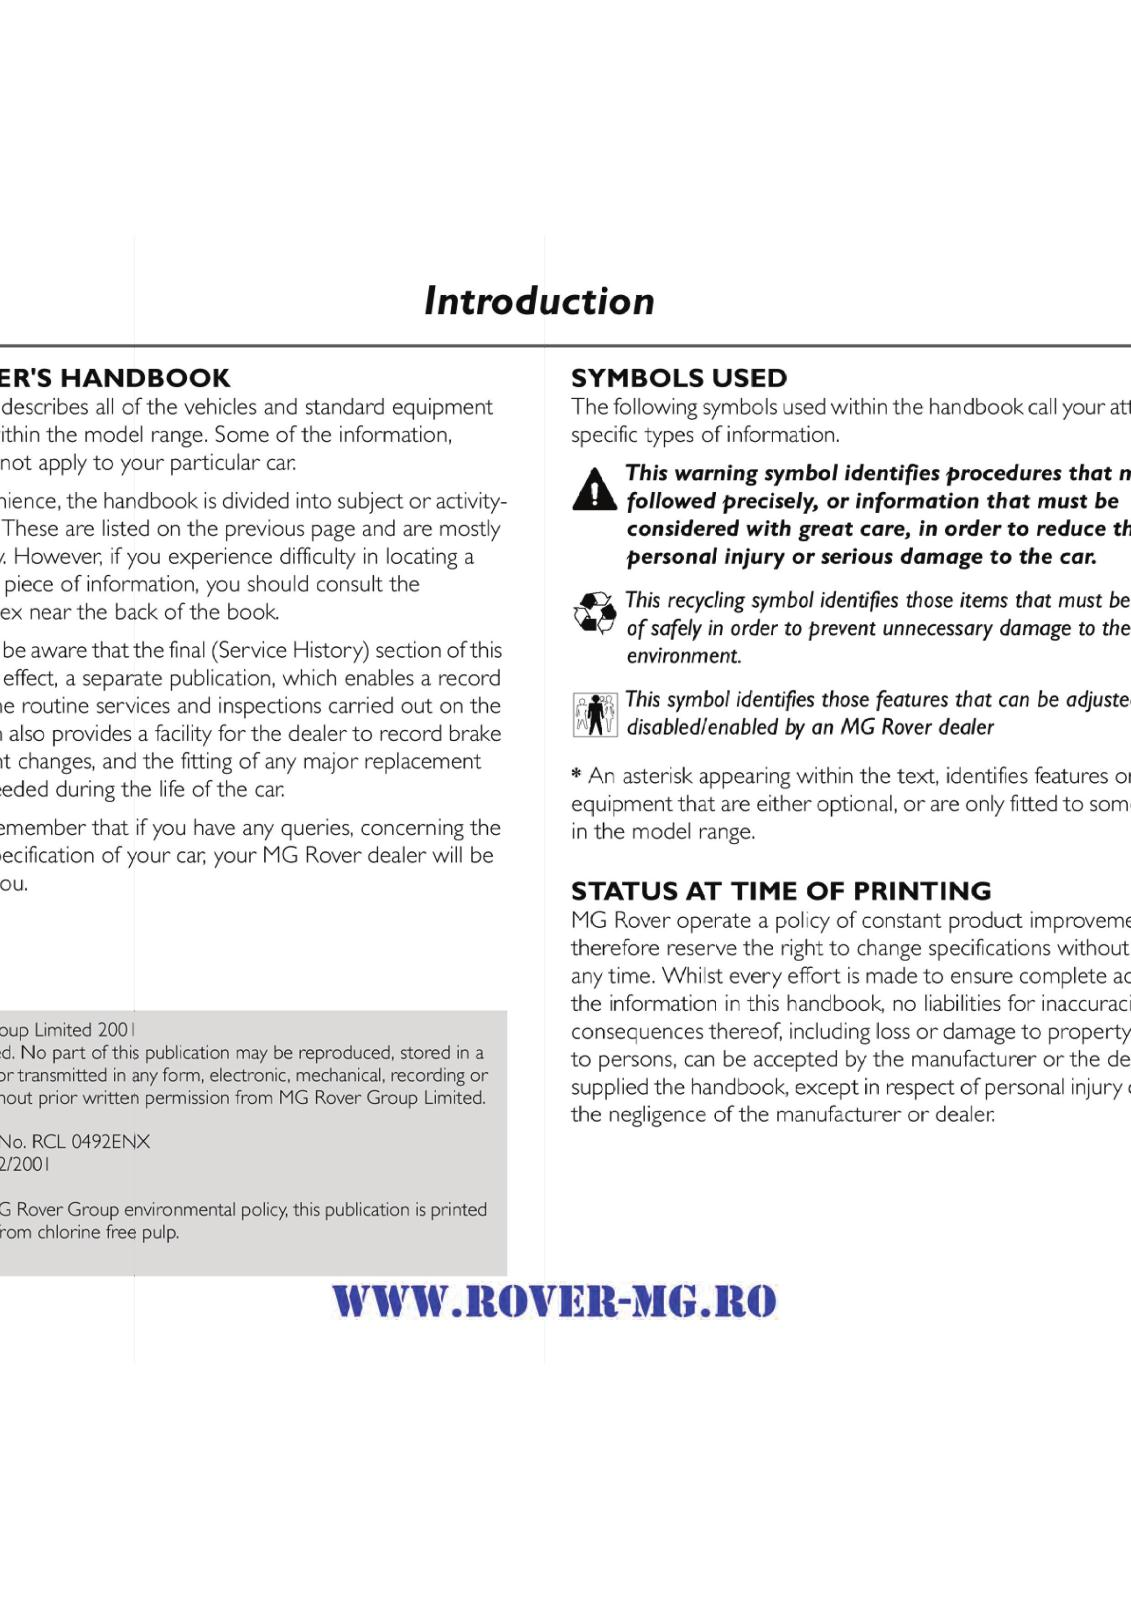 Index of /forum/1documentatii rovermg/mg f tf Handbook/files/res/mobile/